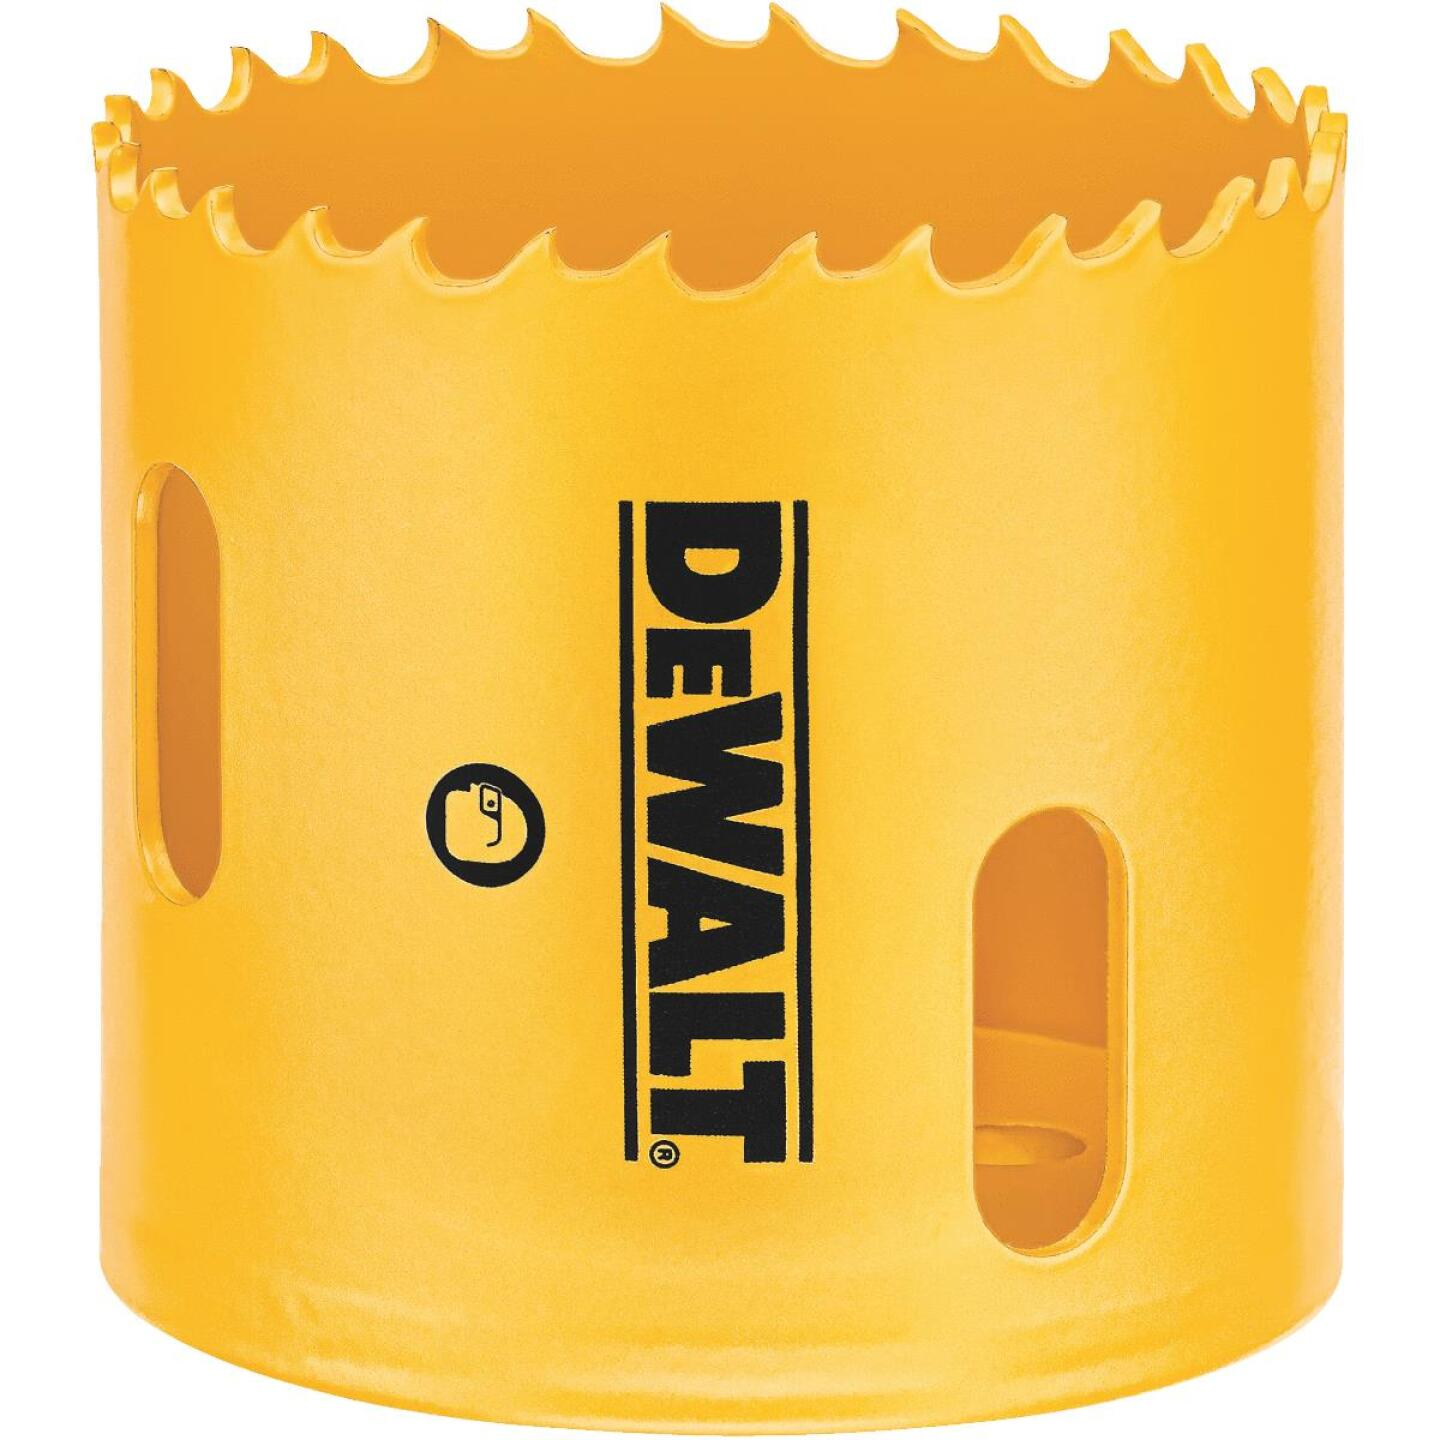 DeWalt 2-3/4 In. Bi-Metal Hole Saw Image 1